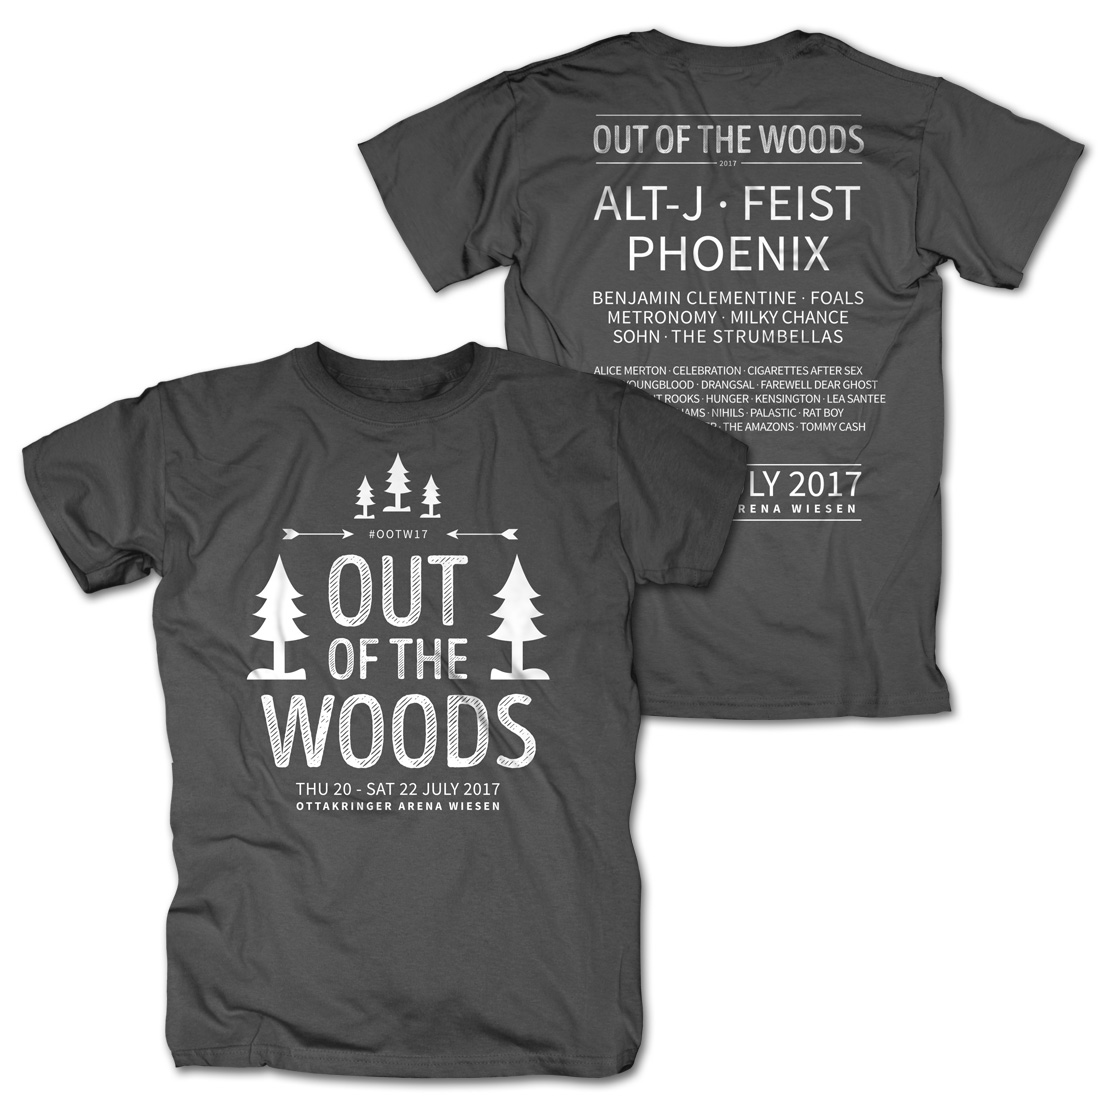 In The Trees von Out Of The Woods - T-Shirt jetzt im My Festival Shop Shop